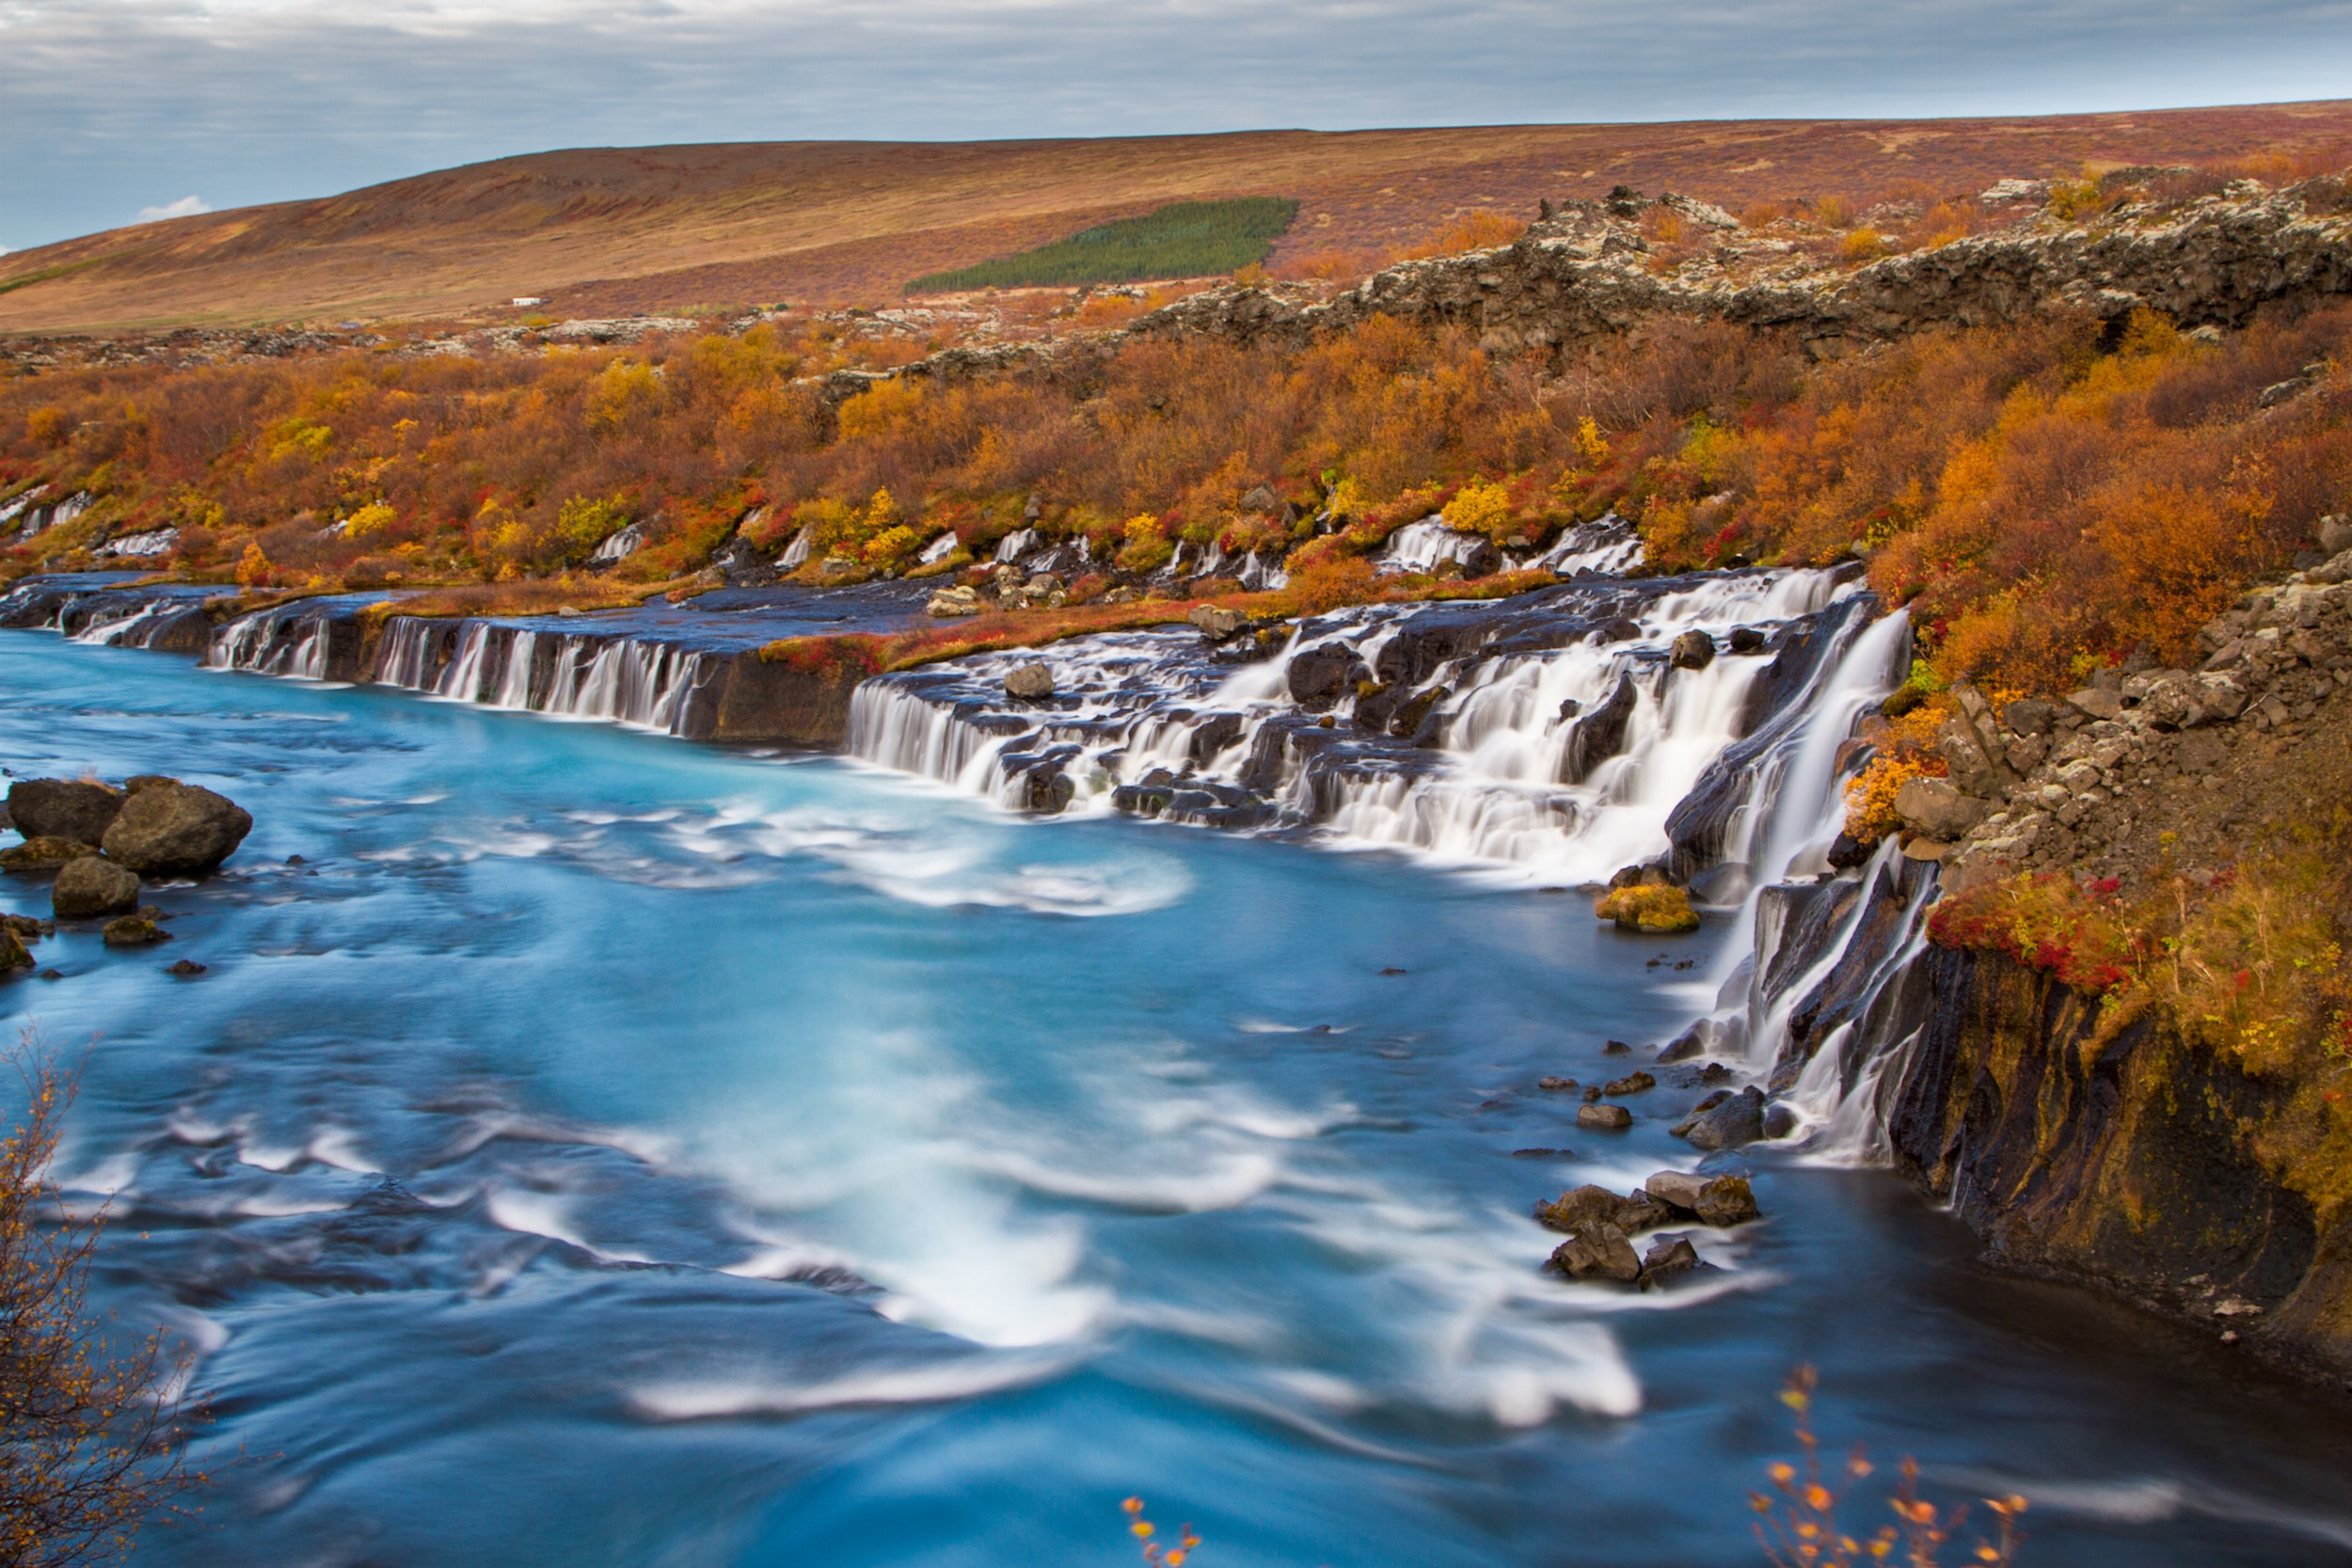 Falls flowing into a stunning river in Iceland's west.